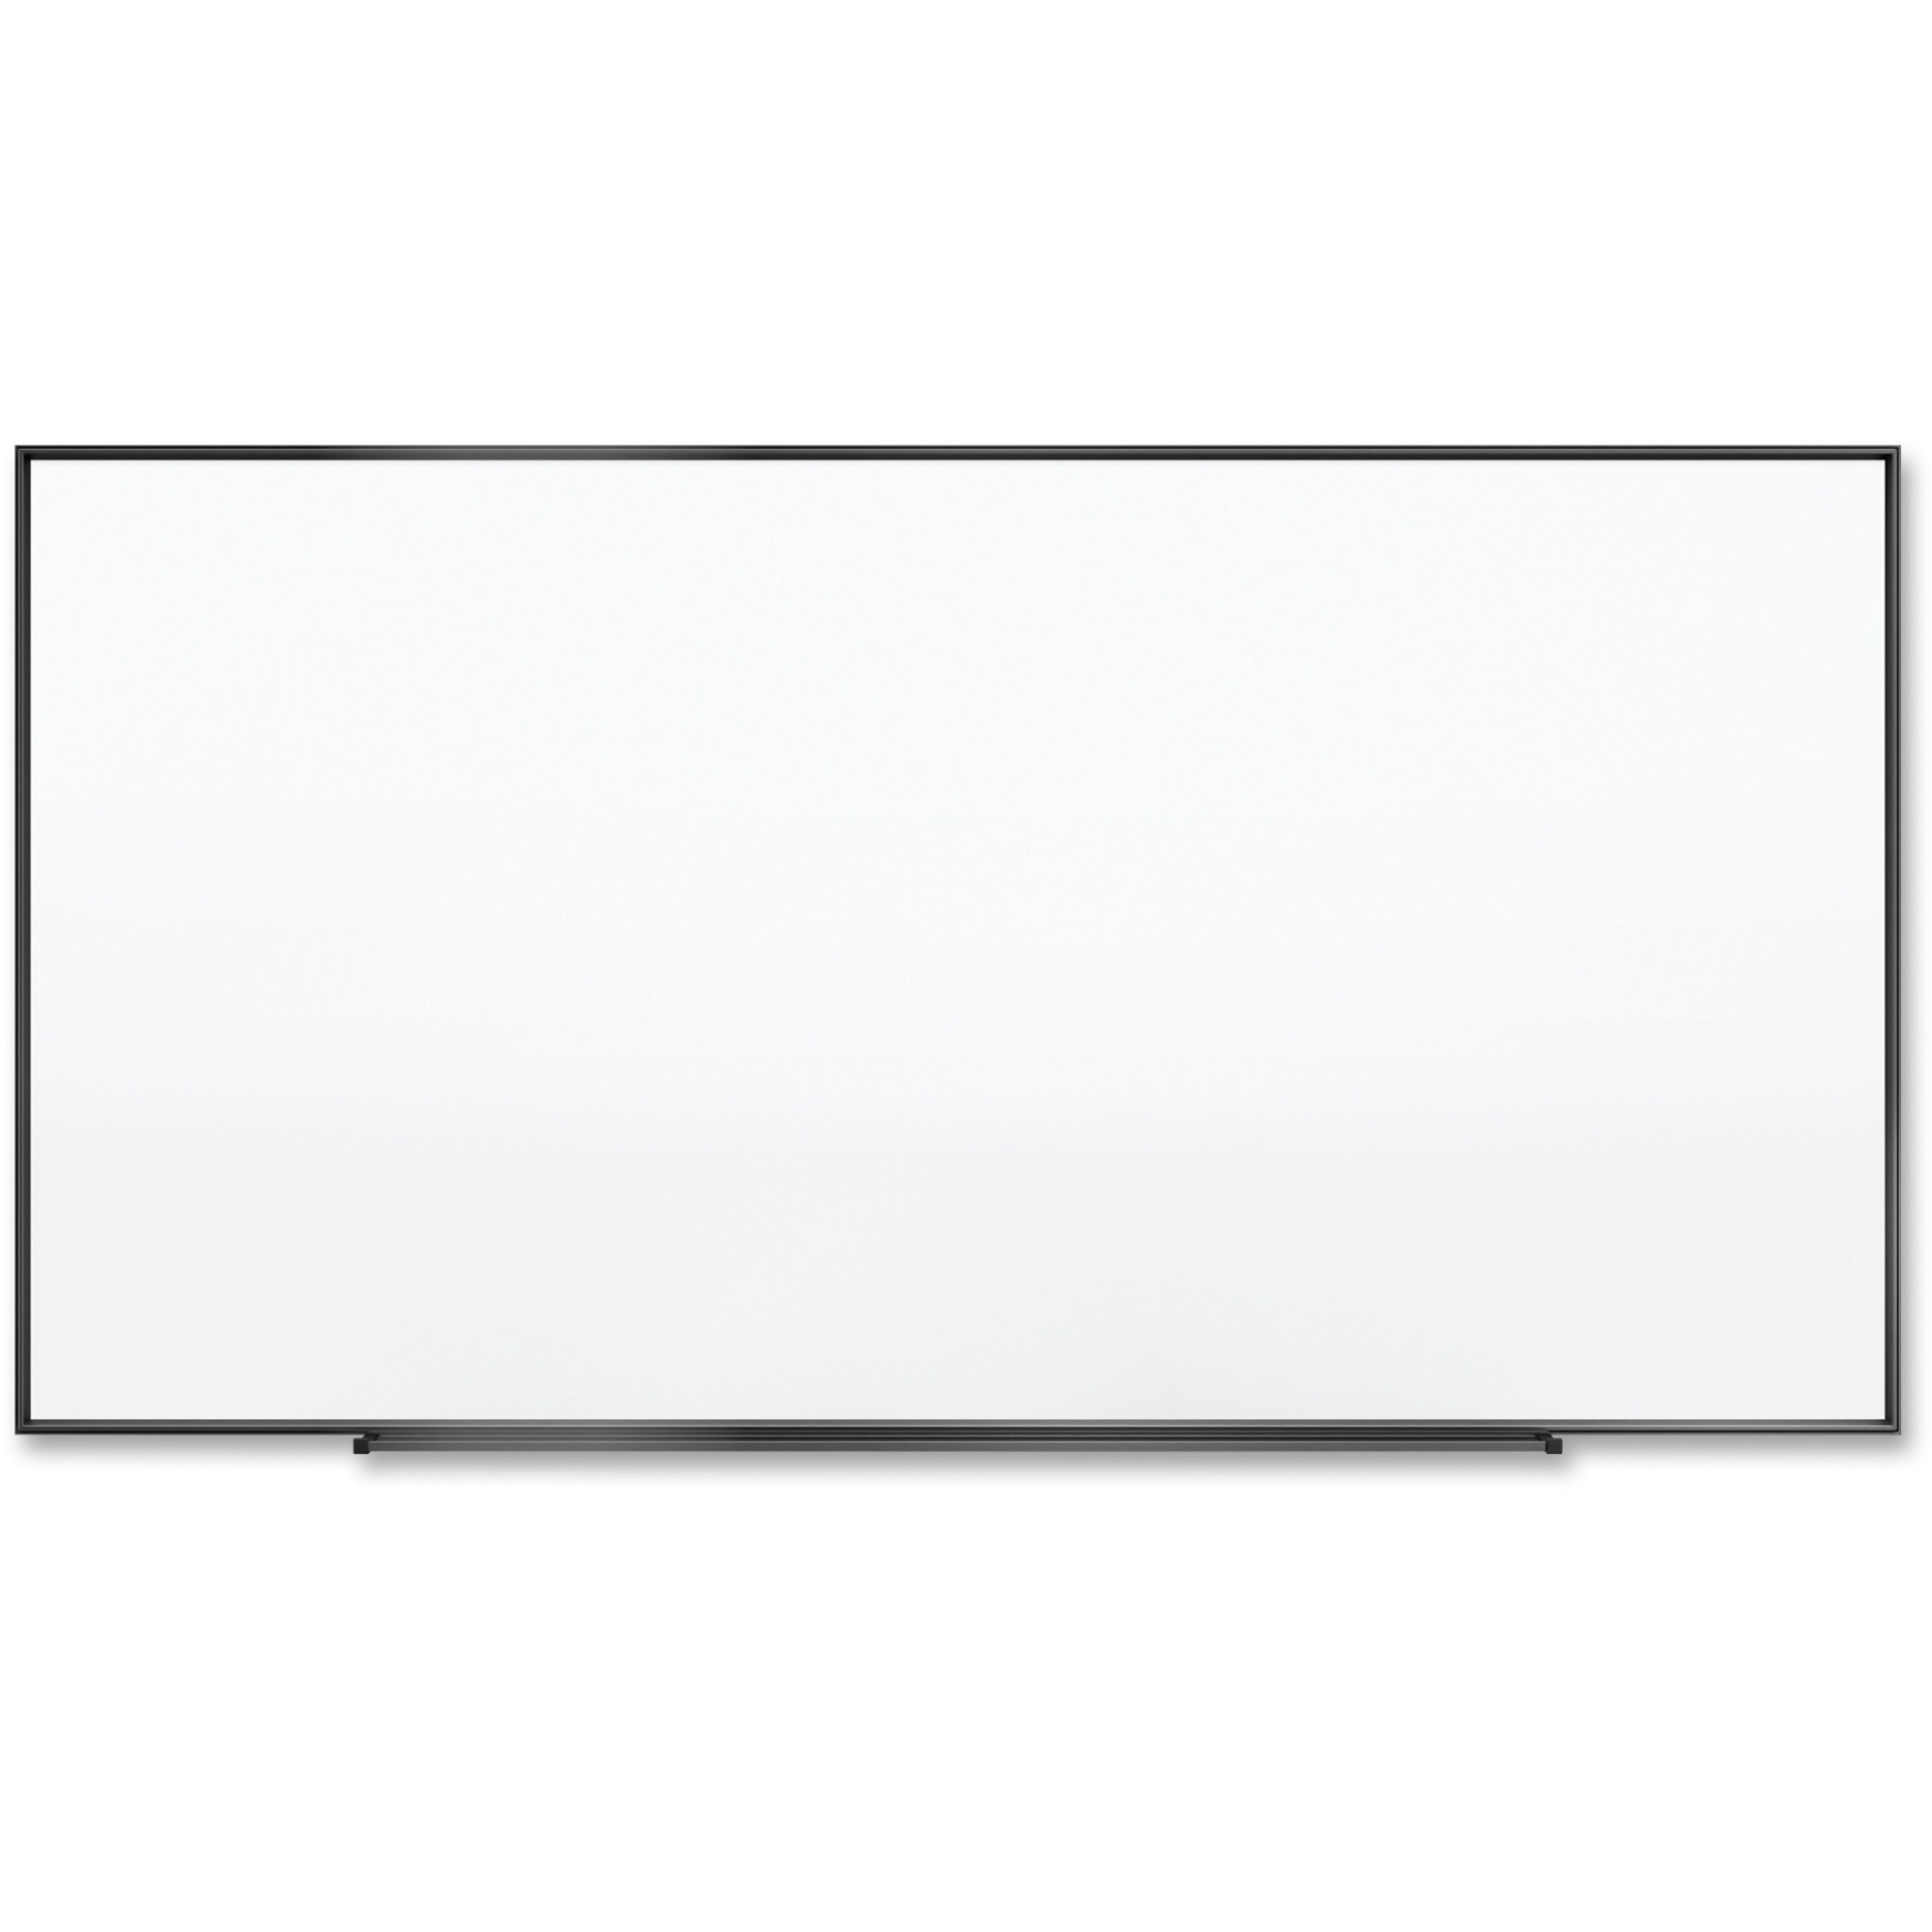 Acco Brands Corporation Quartet® Fusion Nano-clean Magnetic Whiteboard - 96 (8 Ft) Width X 48 (4 Ft) Height - White Surface - Black Aluminum Frame - Horizontal/vertical - 1 Each